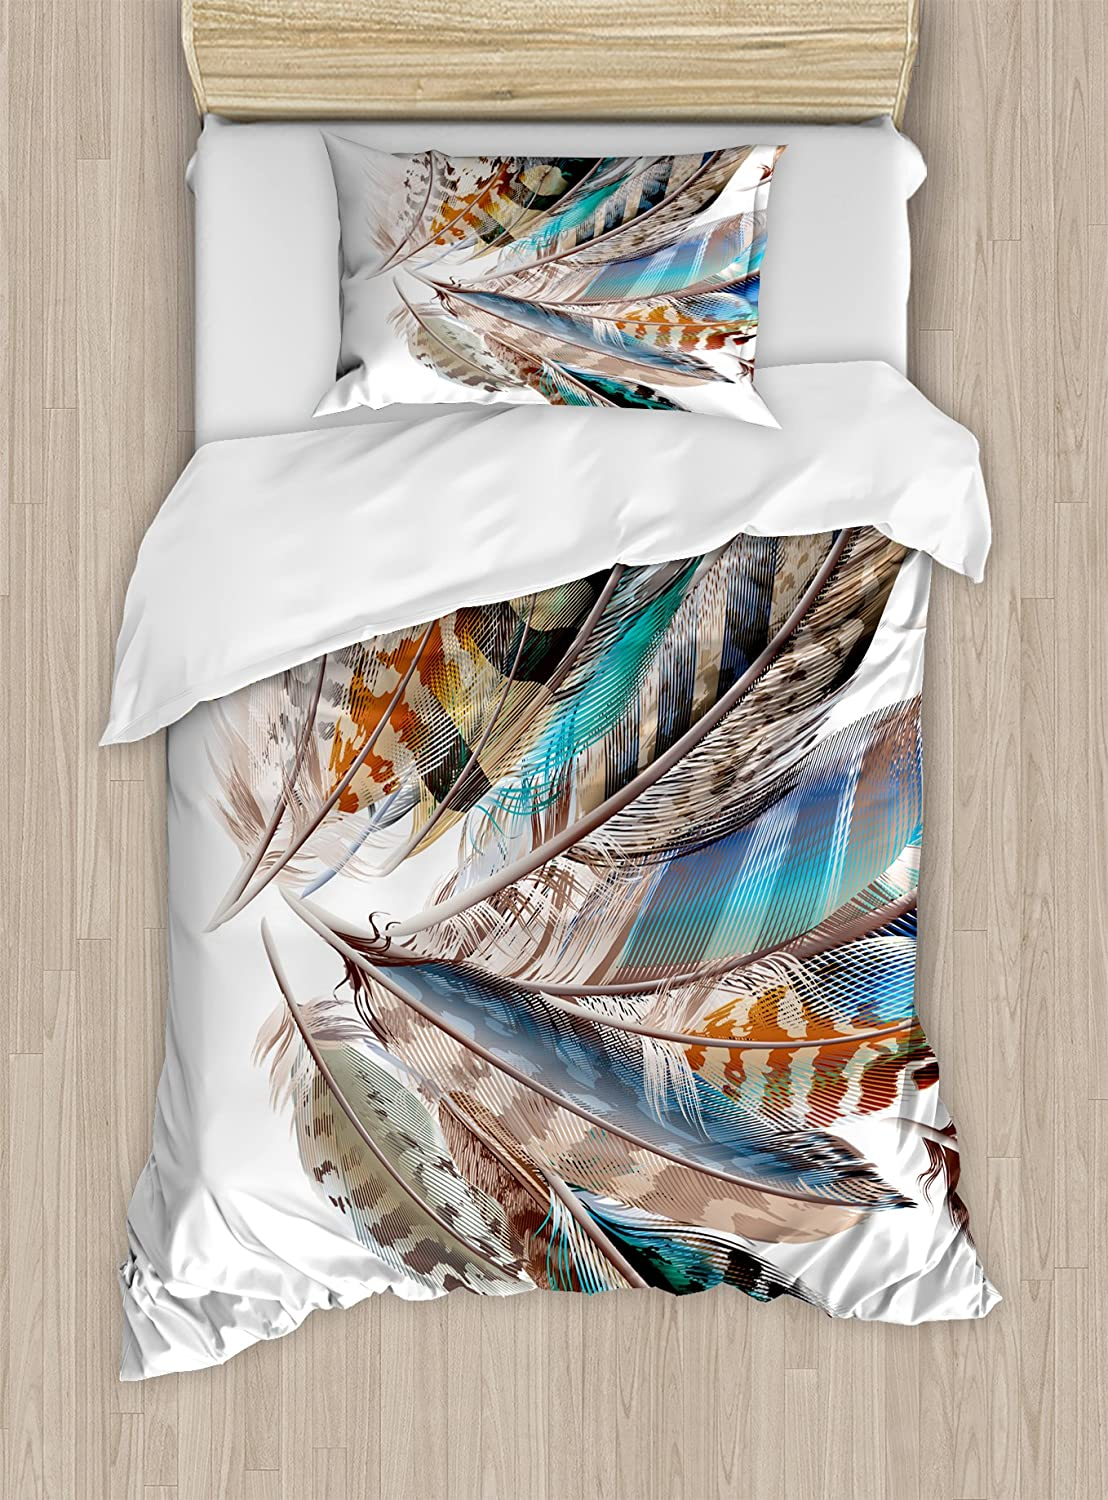 Ambesonne Feathers Duvet Cover Set, Vaned Types and Natal Contour Flight Bird Feathers and Animal Skin Element Print, Decorative 2 Piece Bedding Set with 1 Pillow Sham, Twin Size, Teal Brown